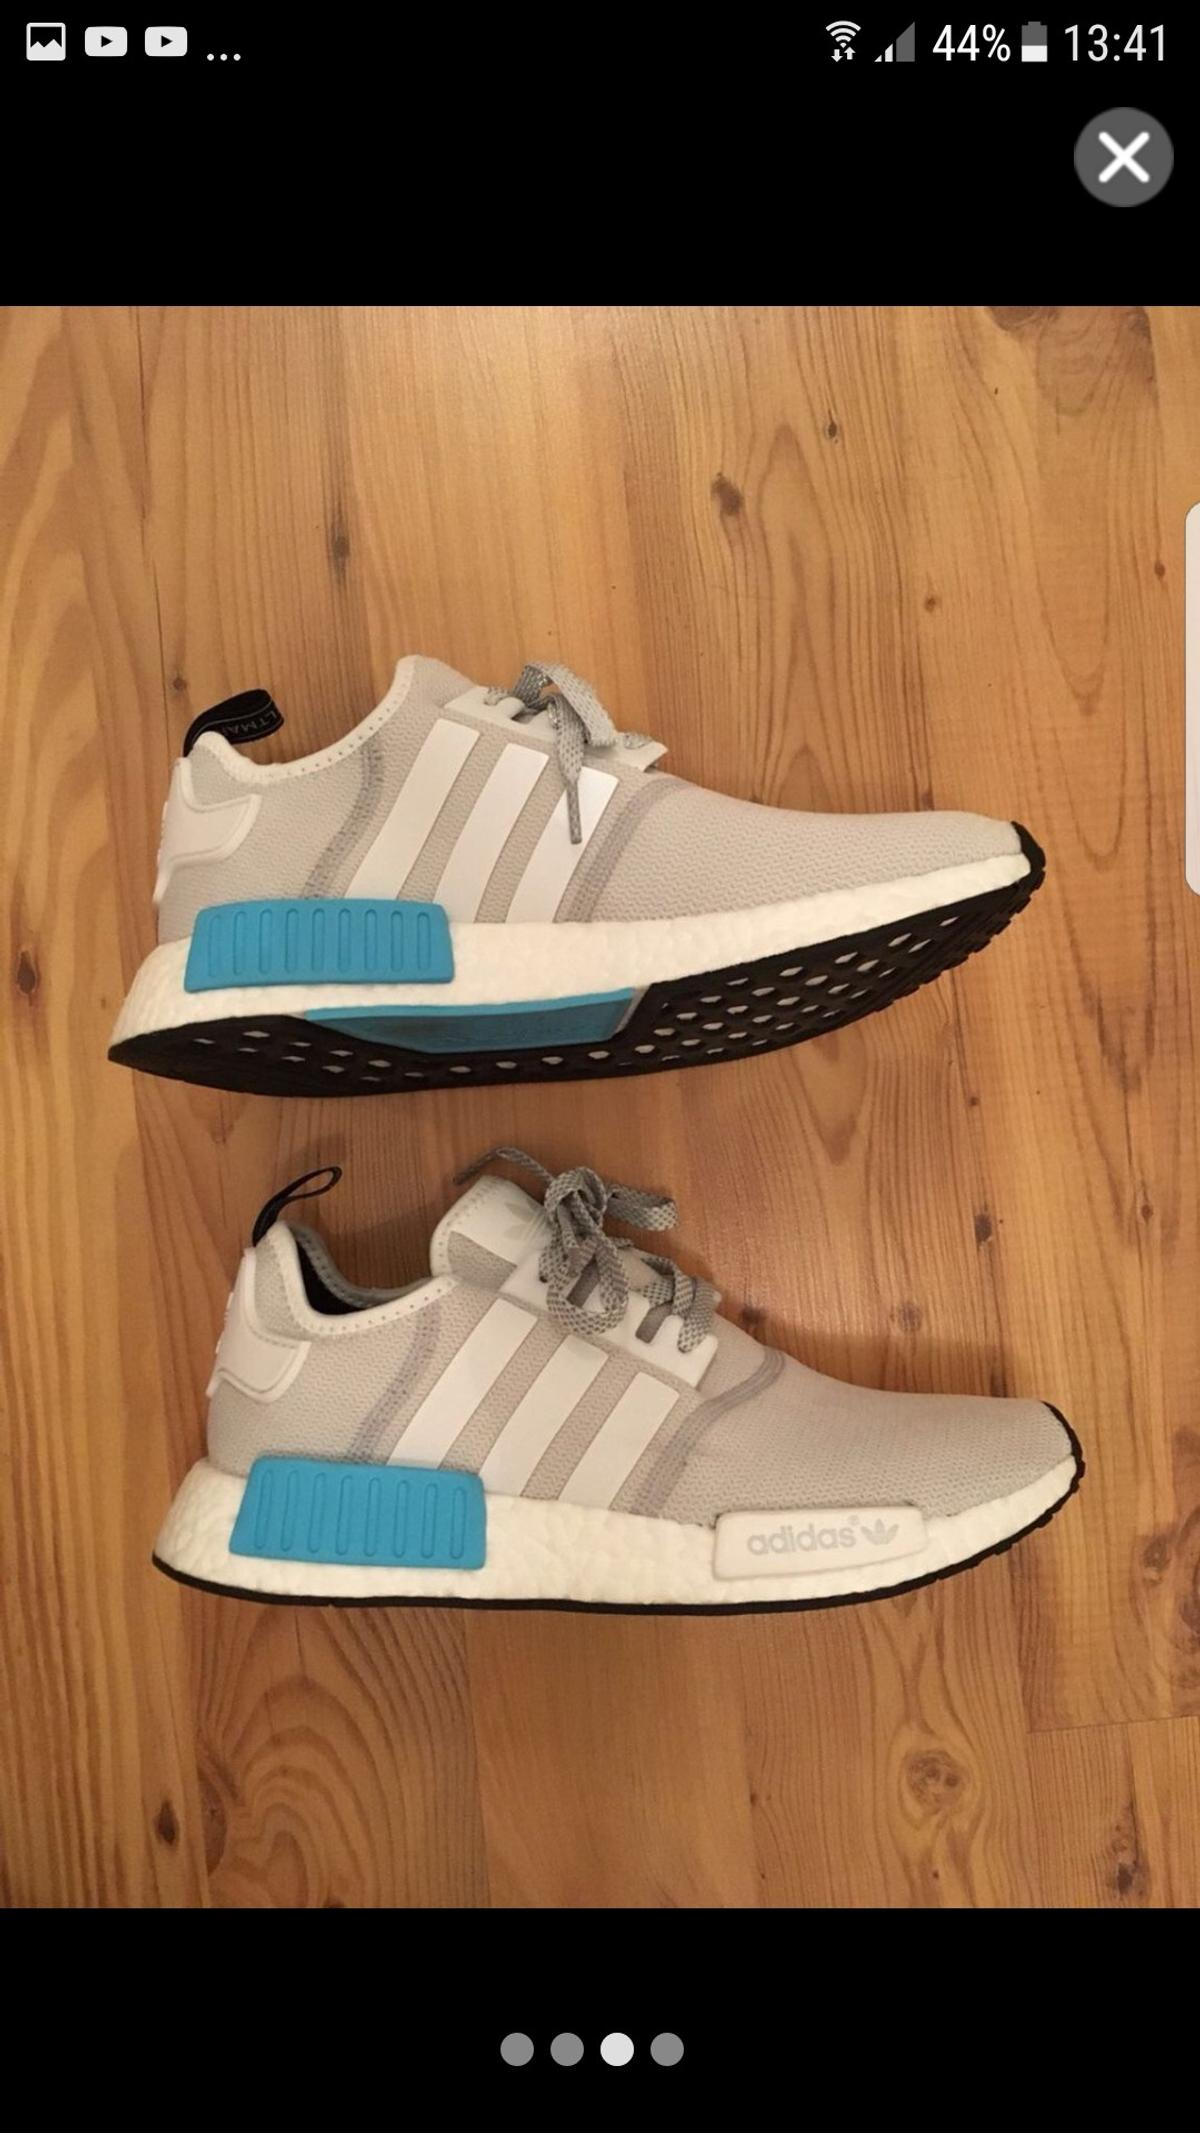 Adidas NMD R1 PK in 1110 KG Simmering for €100.00 for sale